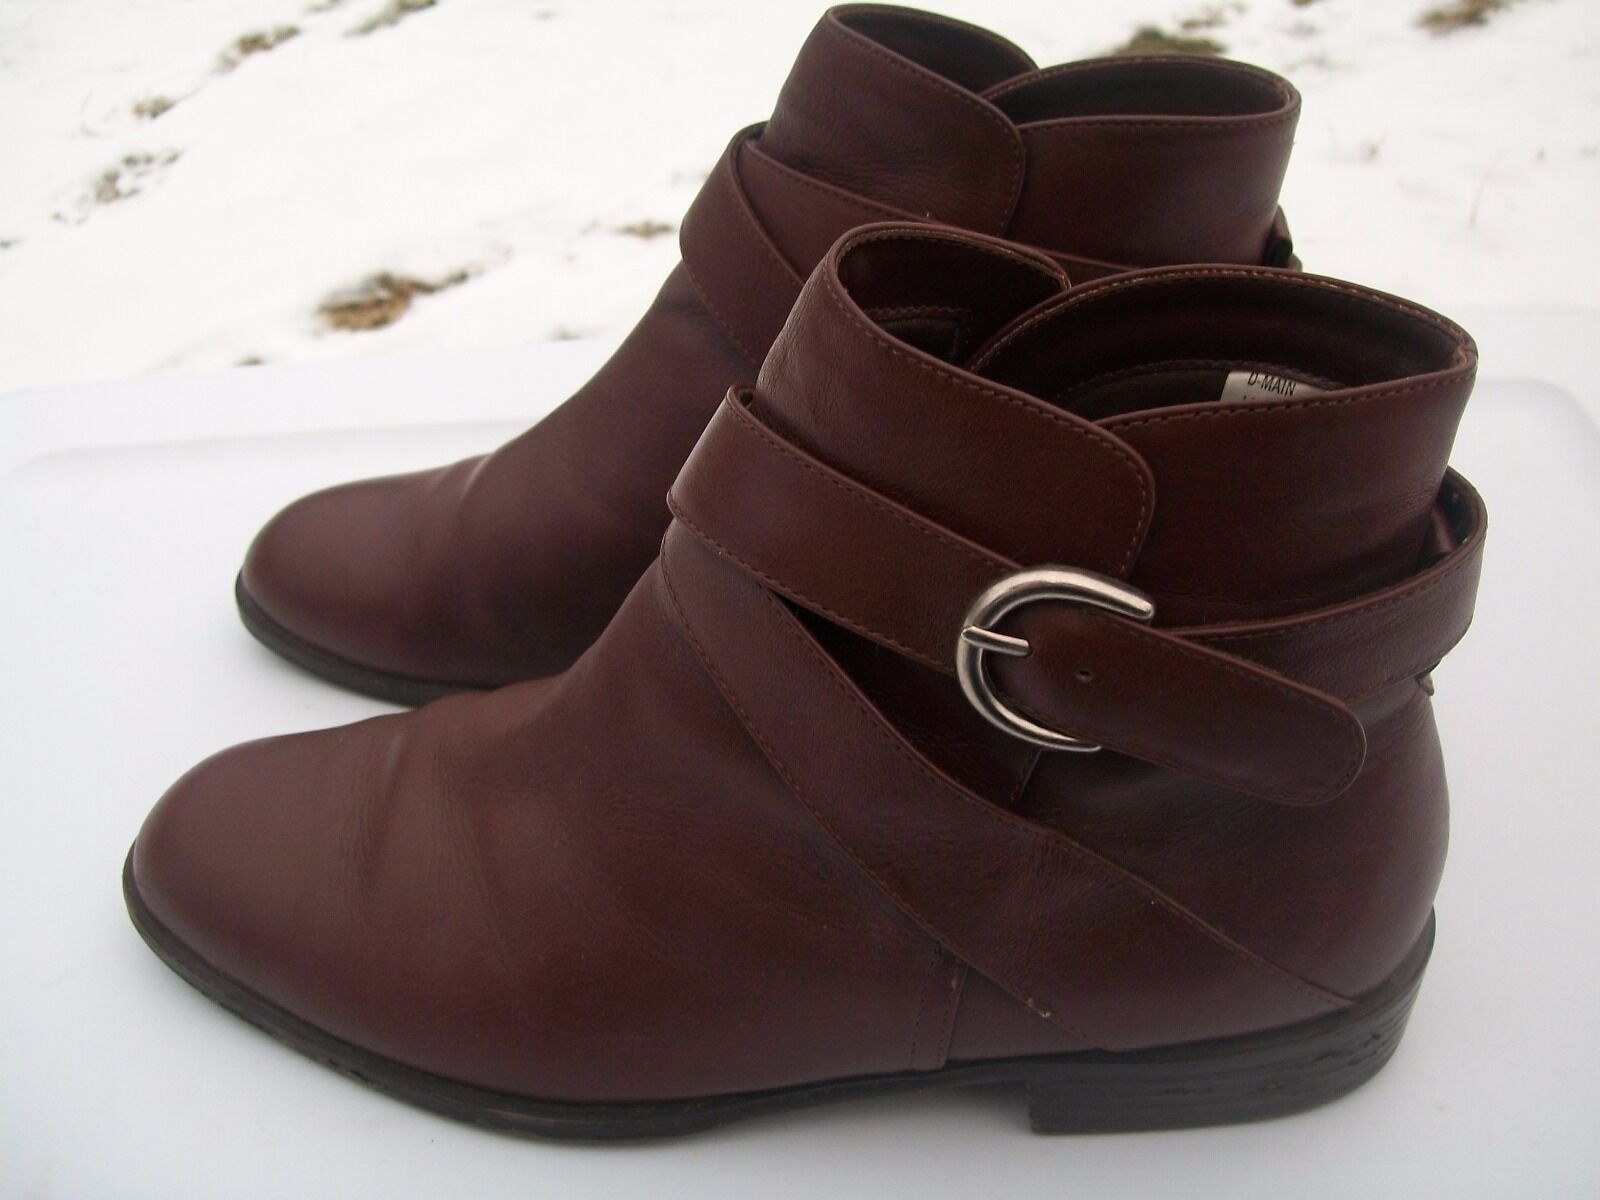 Danexx Womens Size 8M Brown Leather Double Strap Ankle Boots